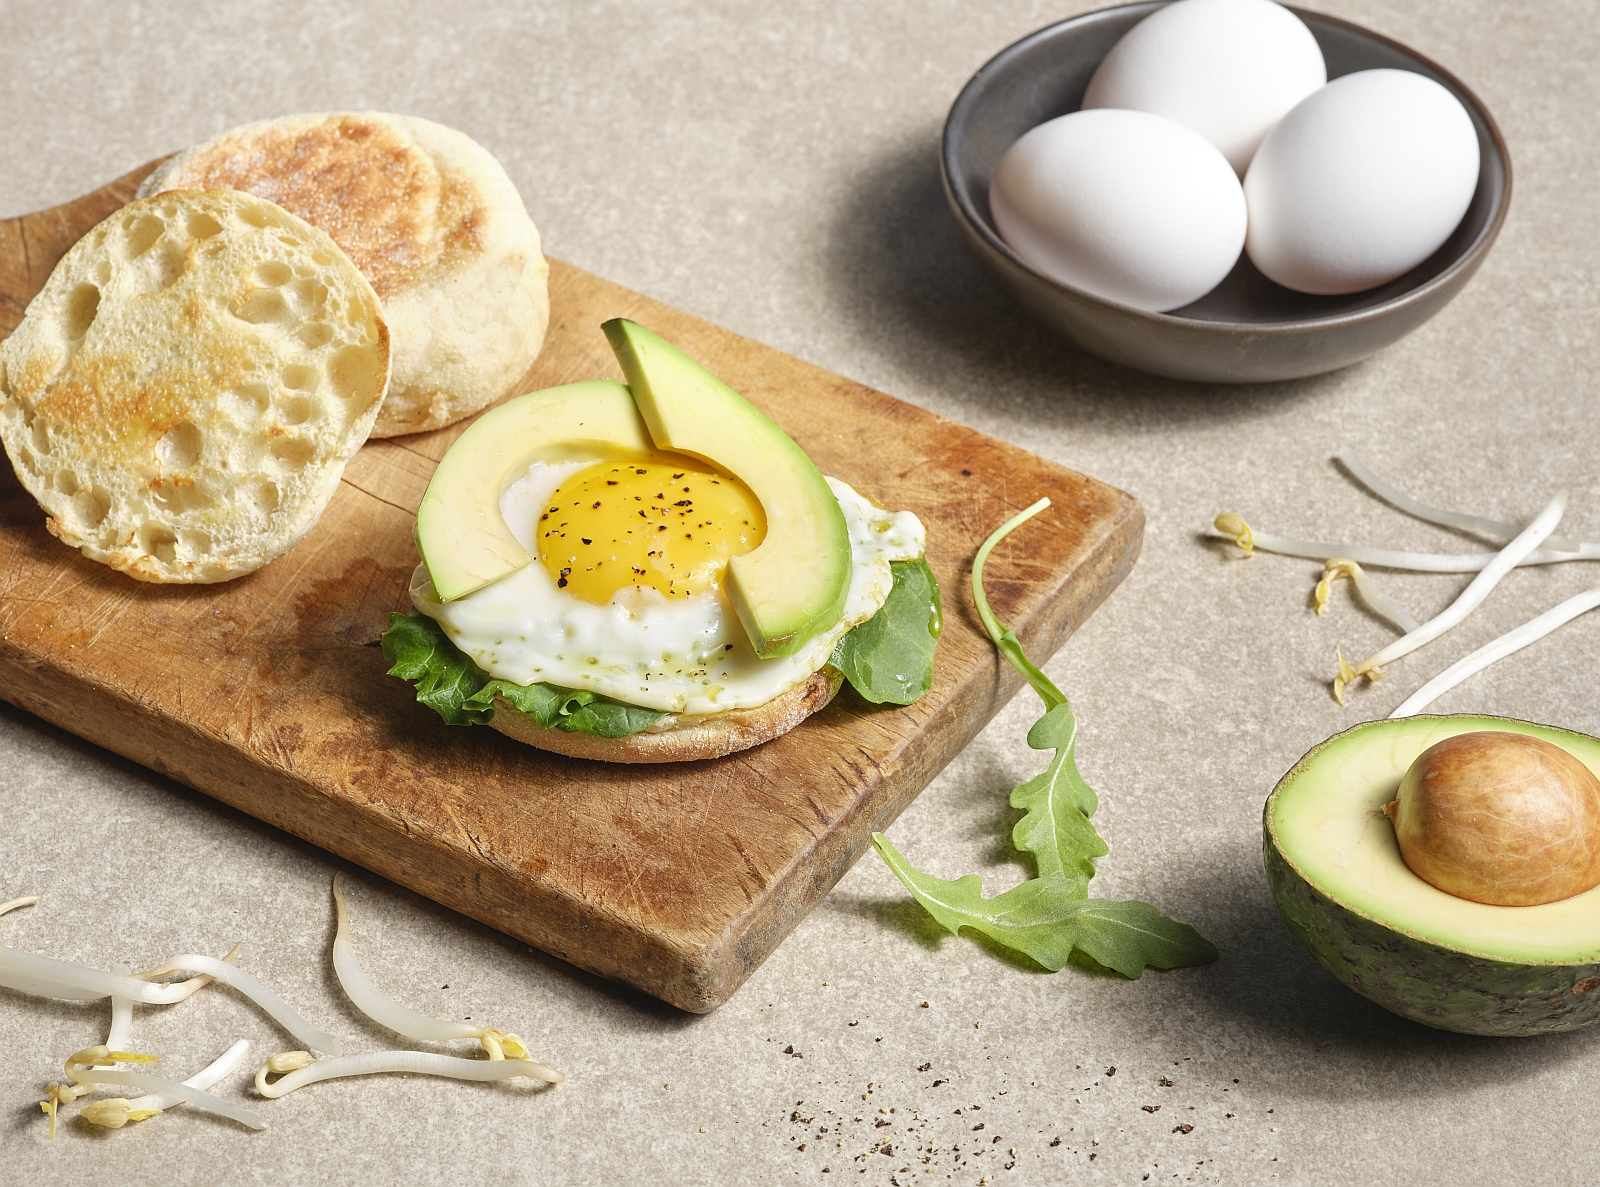 egg with avocado slices and english muffin